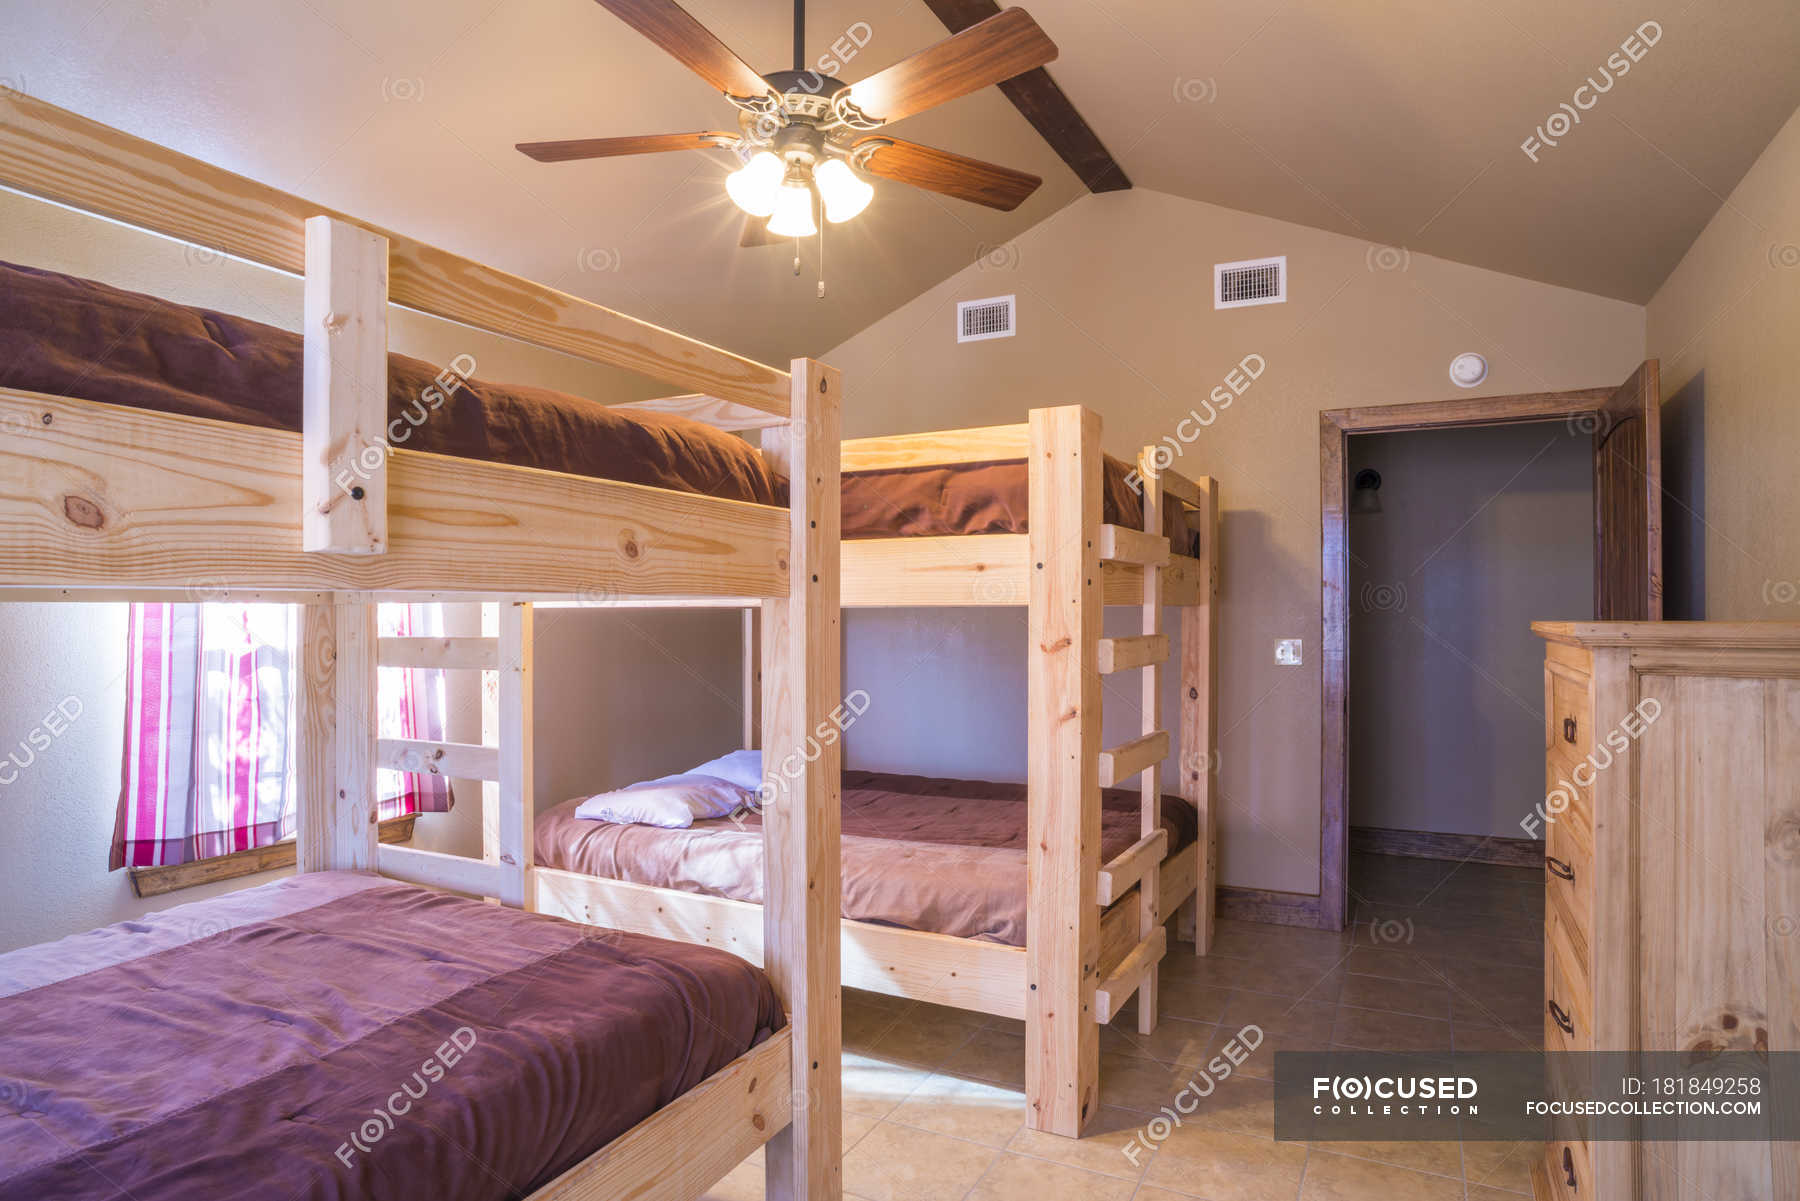 Picture of: Bedroom Interior With Double Bunk Beds Holiday Home House Stock Photo 181849258